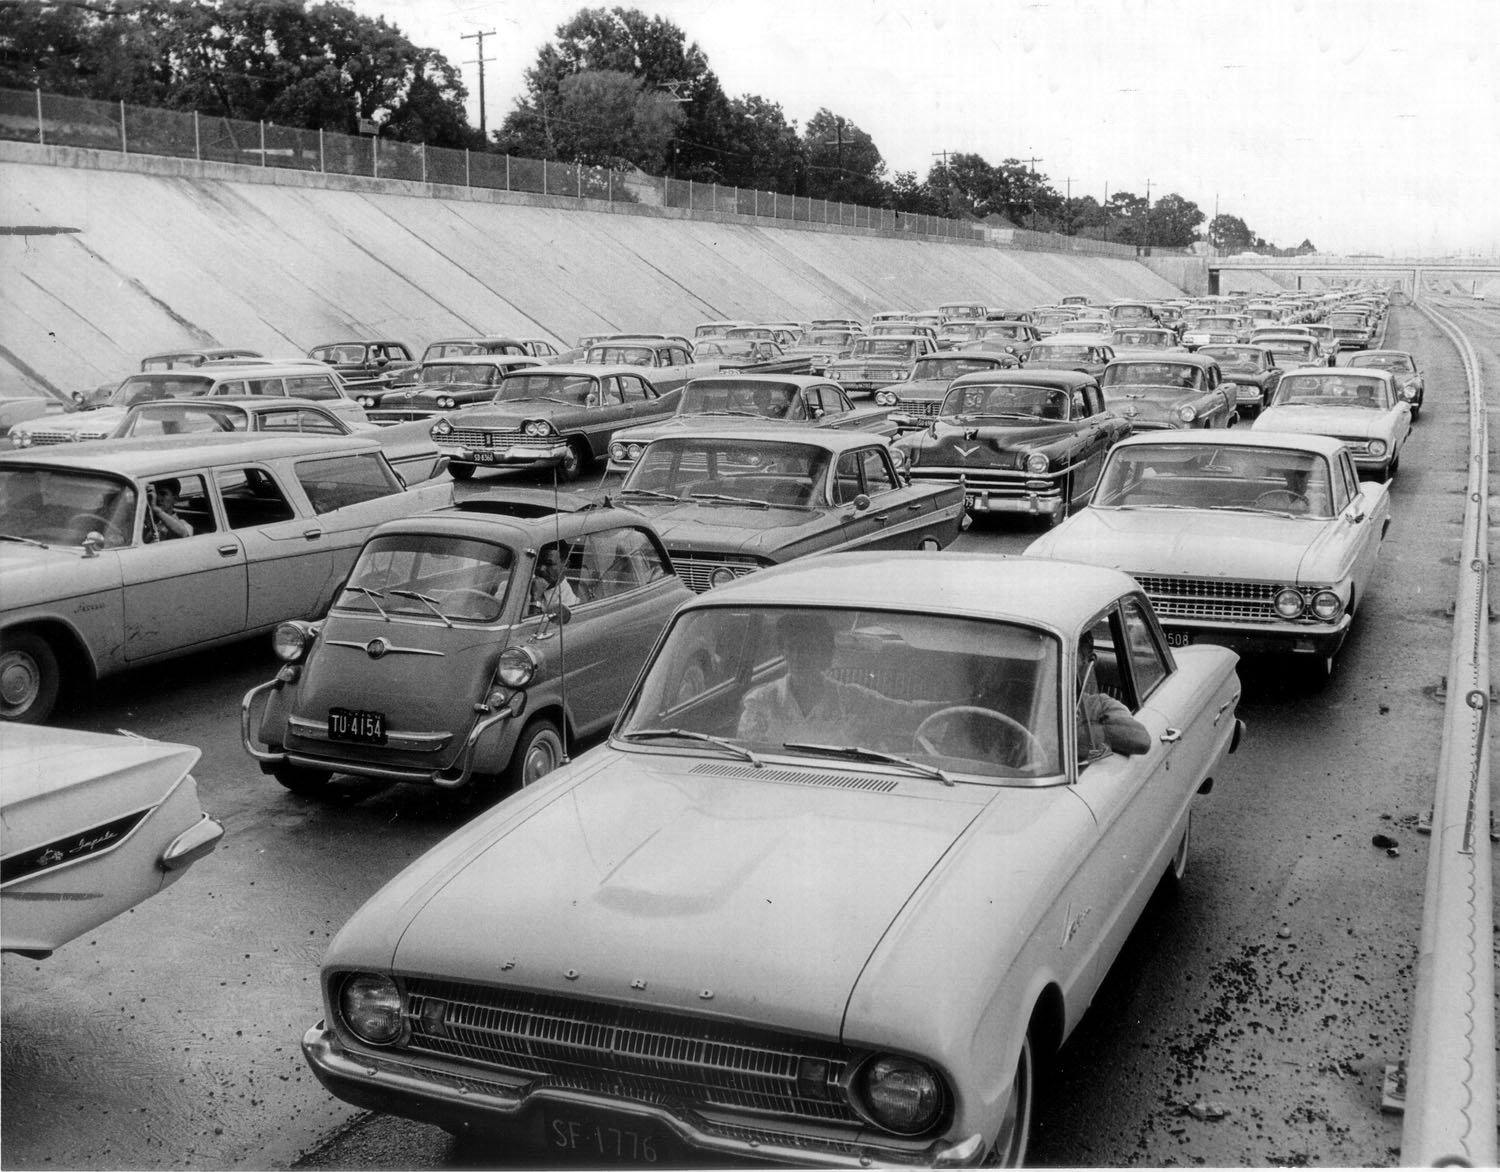 http://www.texasfreeway.com/Houston/historic/photos/images/us59_trench_traffic_jam_1962.jpg